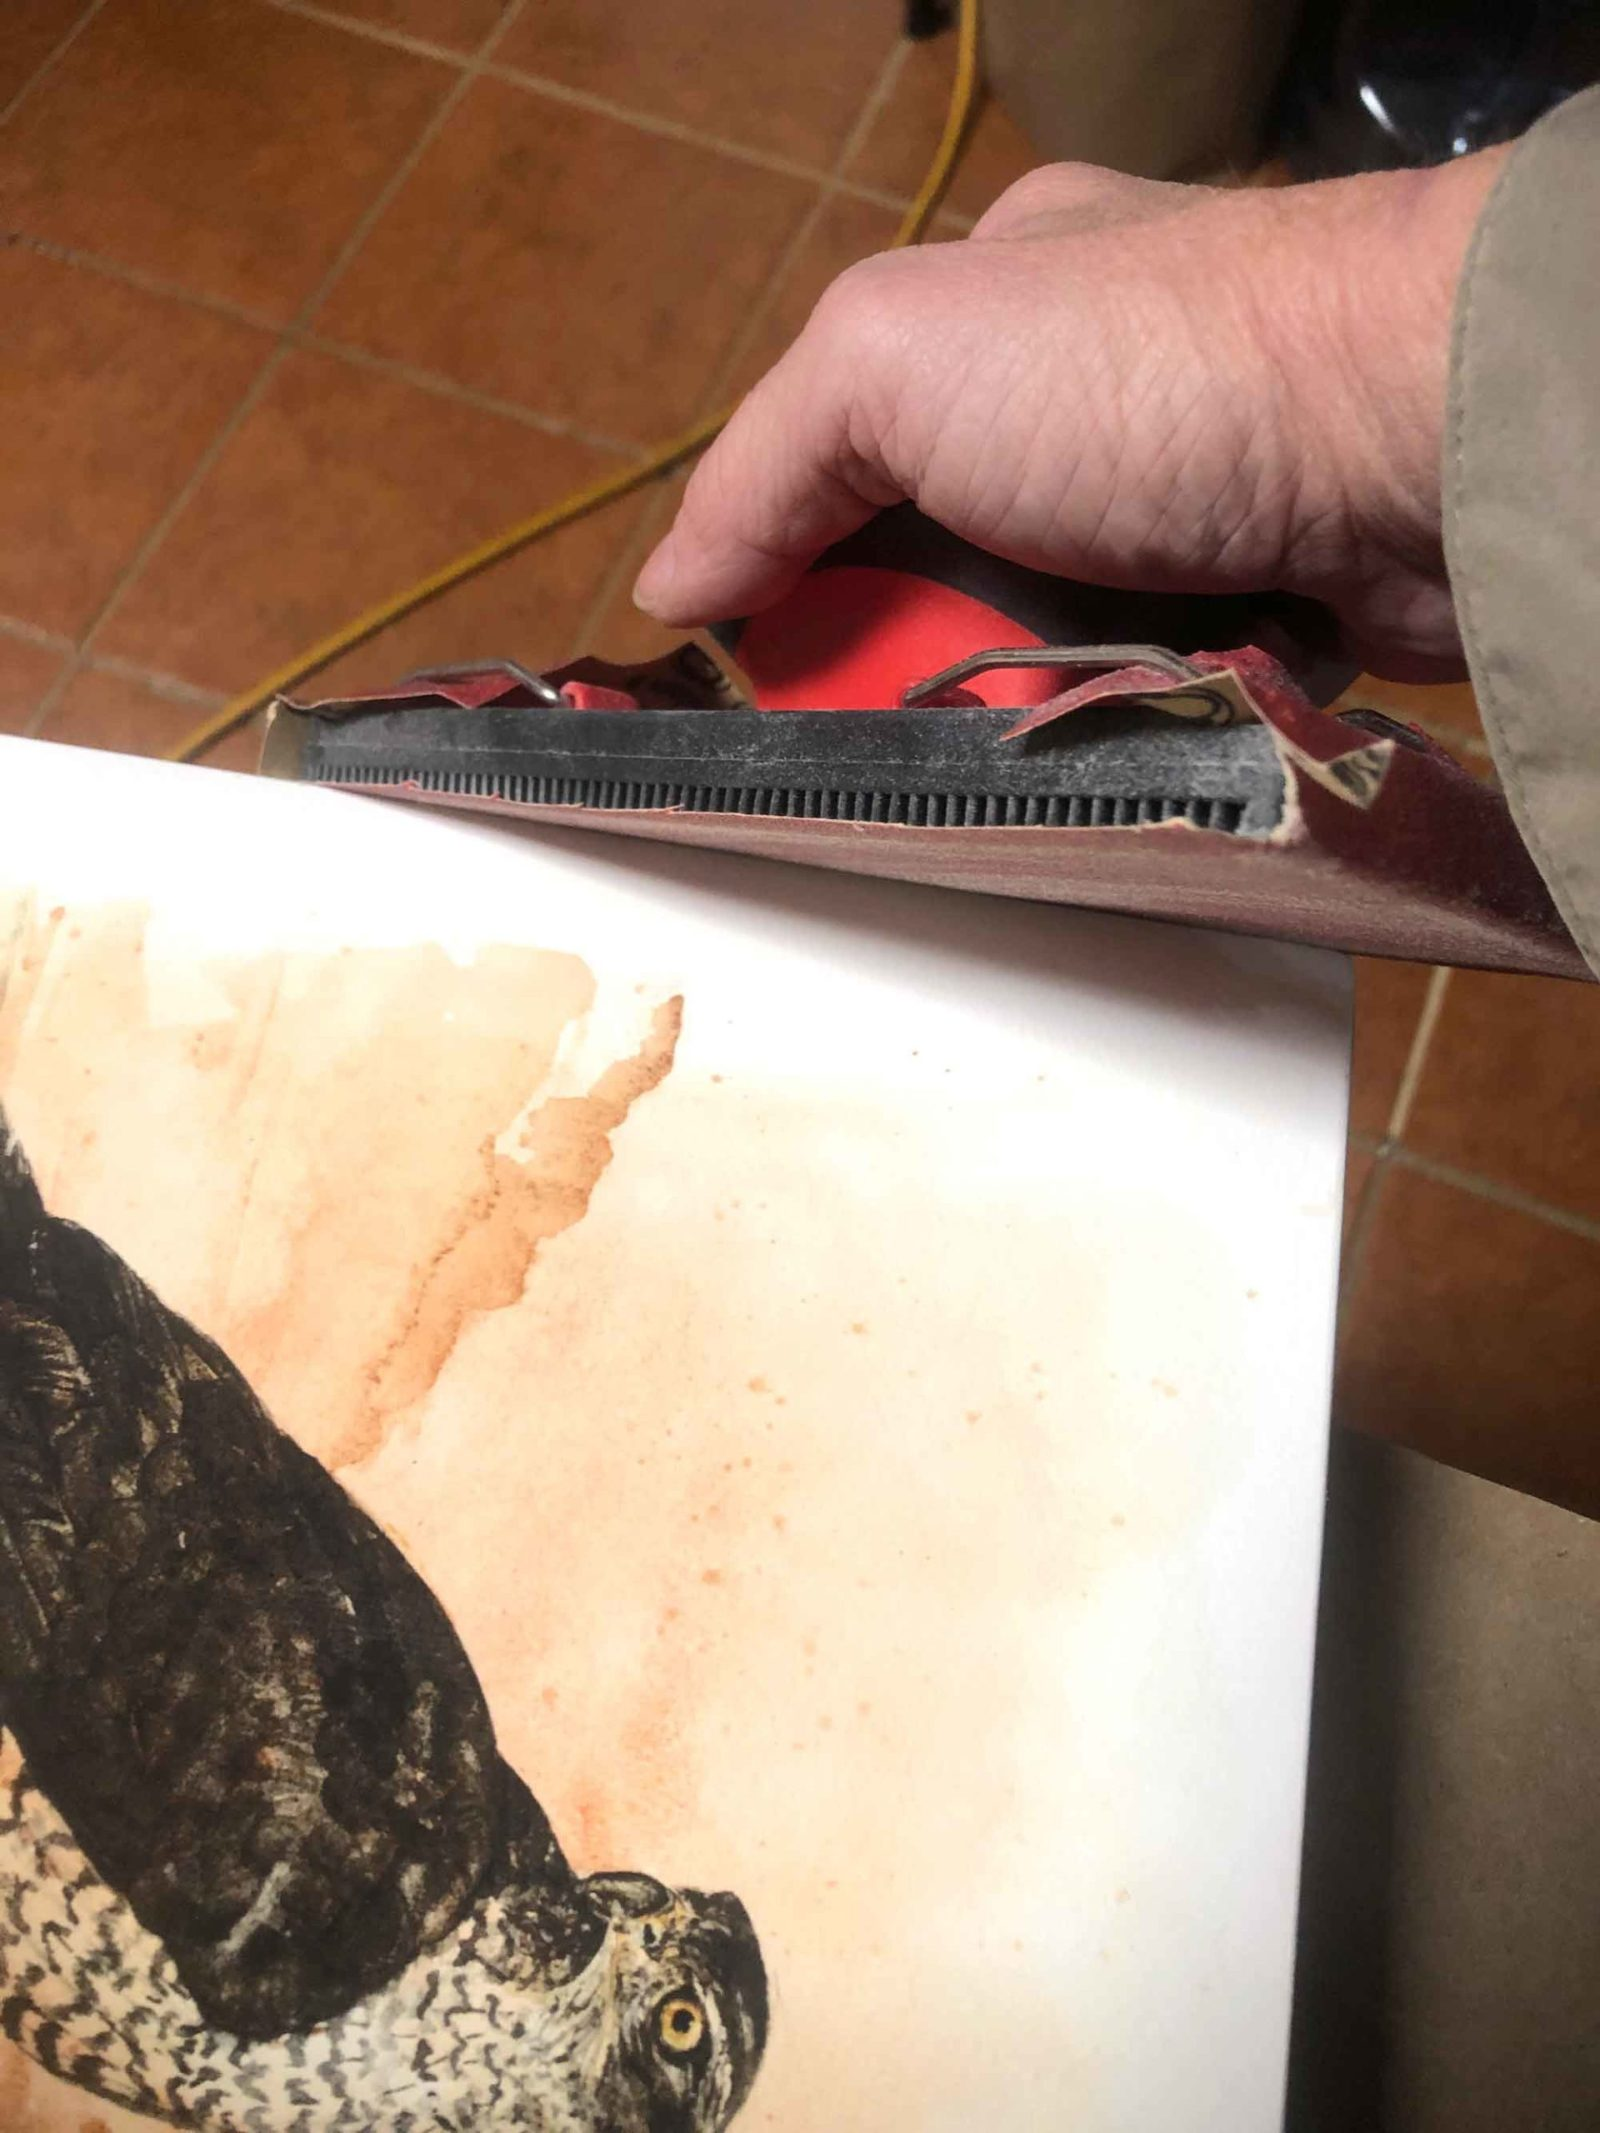 For this step in making mounted prints, use a holder for the sandpaper. It makes the job a lot easier!